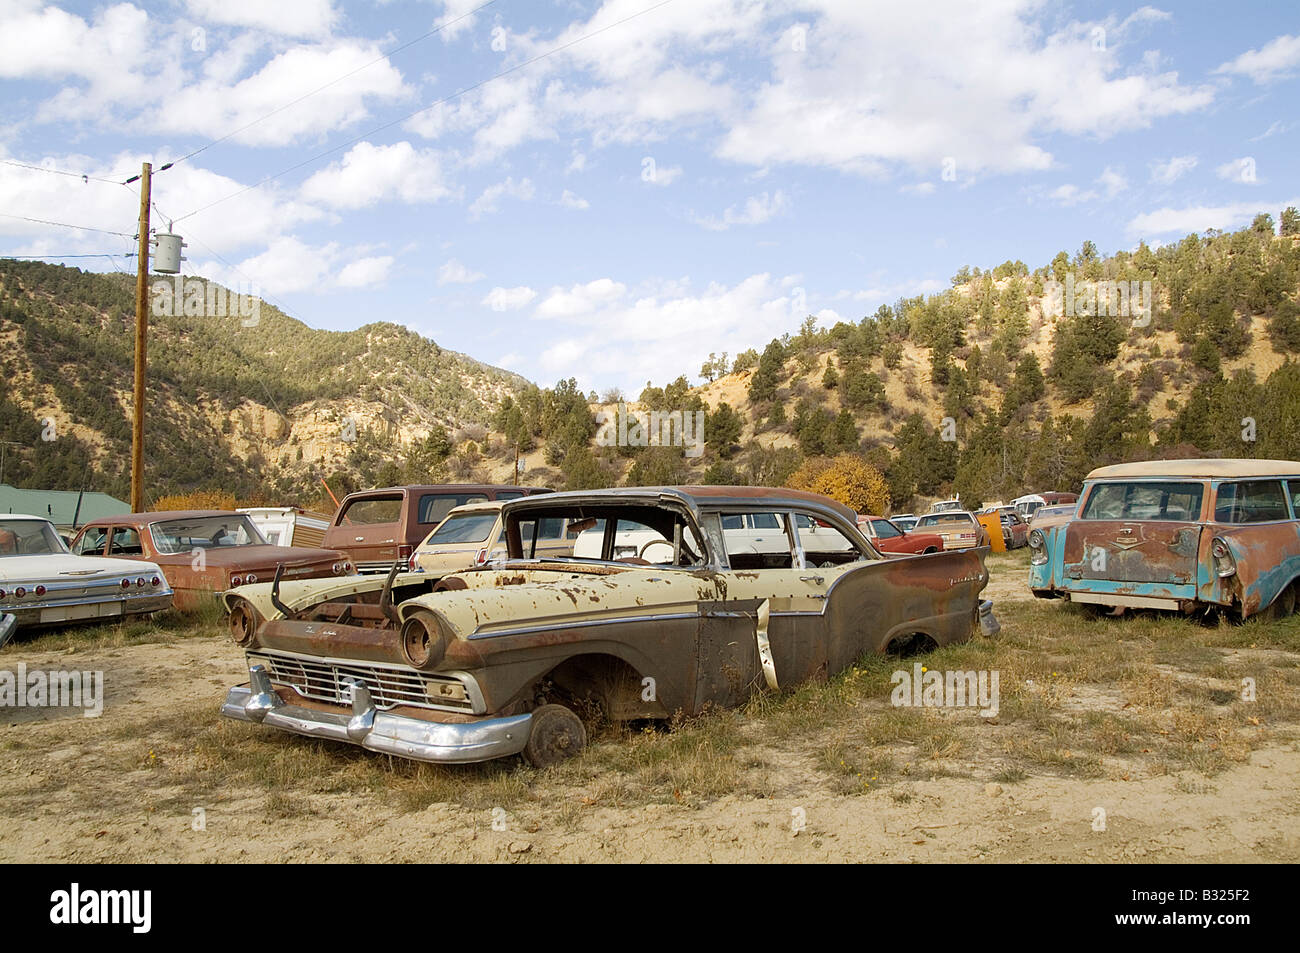 Junk Yards That Buy Old Cars